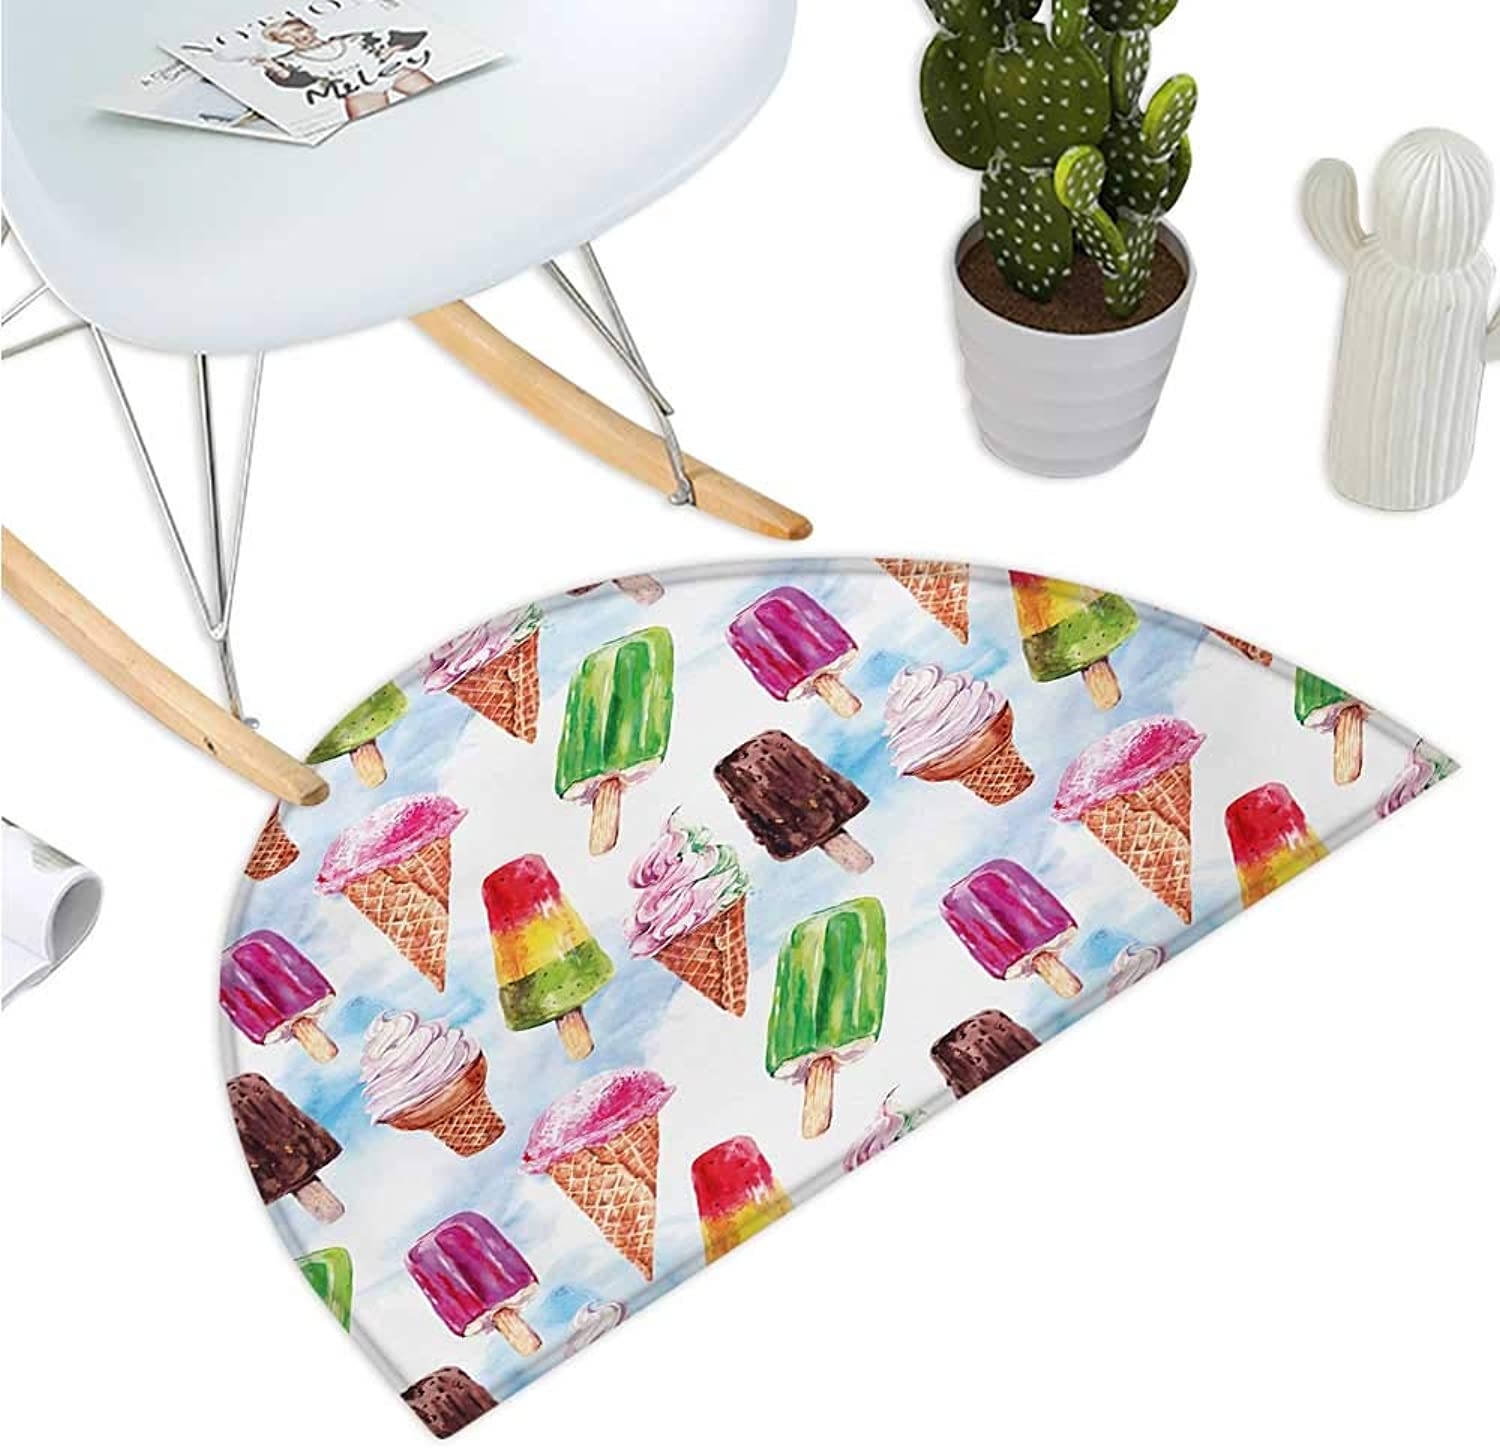 Ice Cream Semicircular Cushion Surreal Exotic Type Ice Cream Motif with Raspberry Kiwi Flavor colorful Display Entry Door Mat H 47.2  xD 70.8  Multicolor